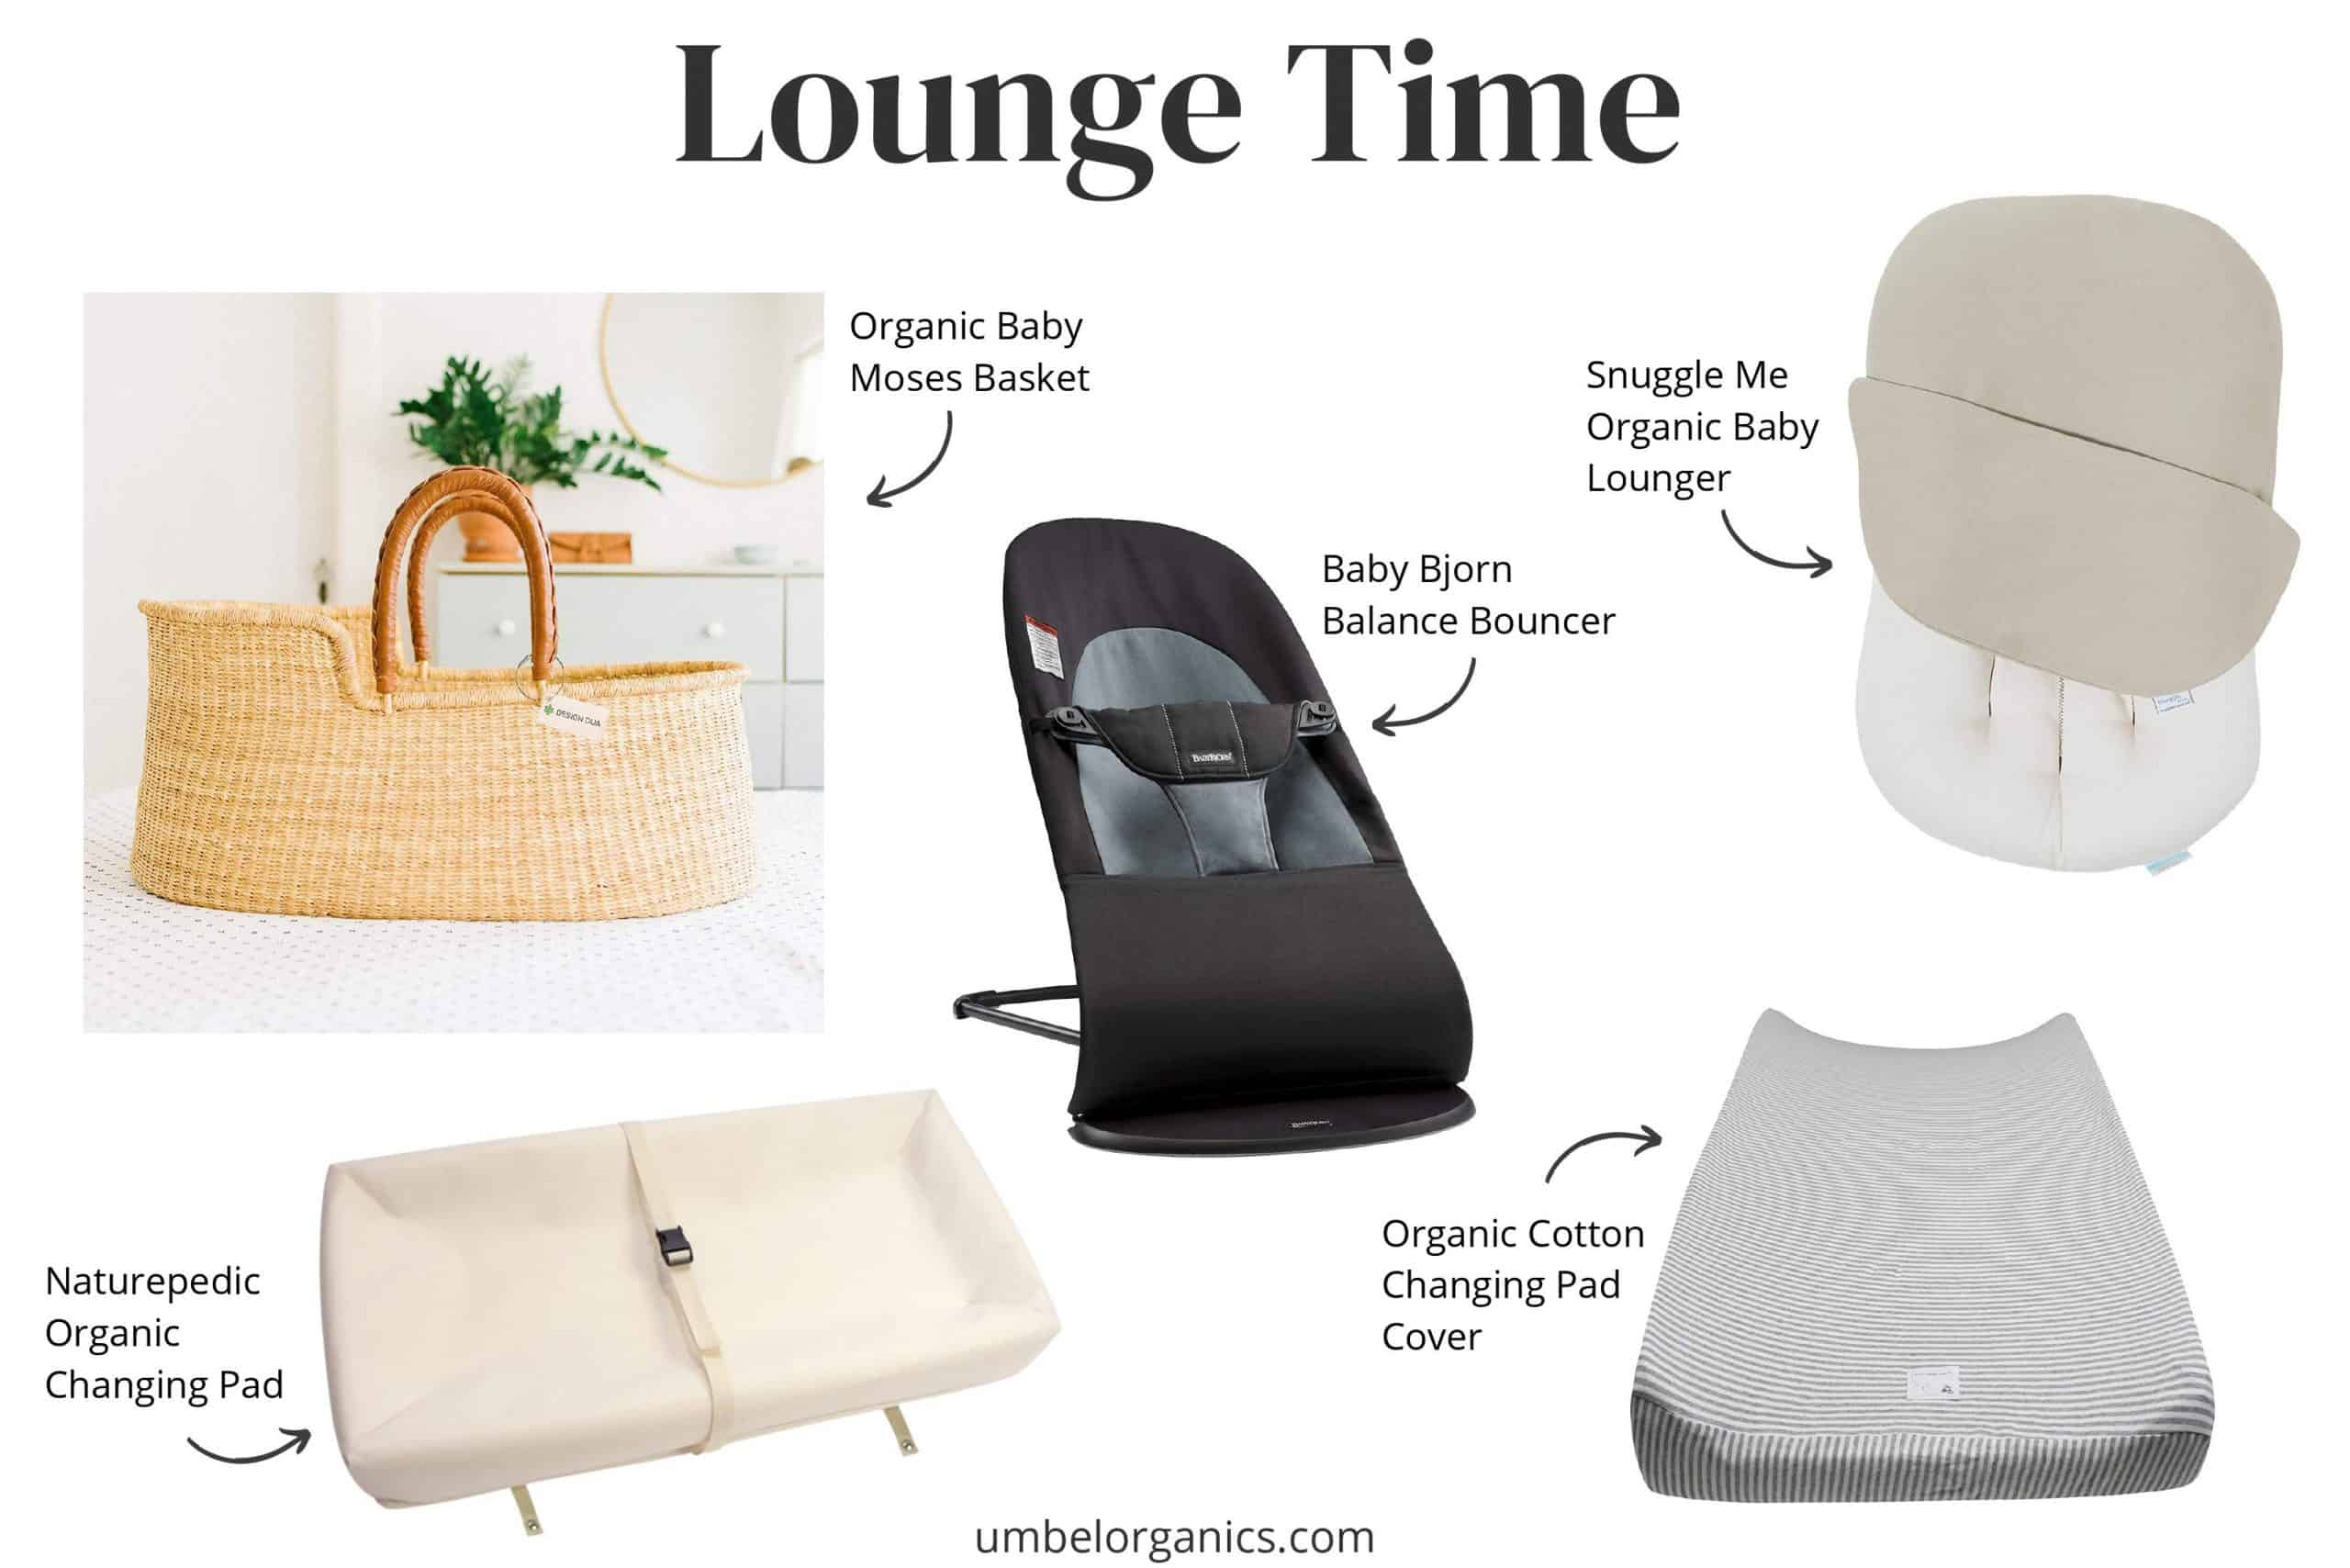 Baby Lounge Time